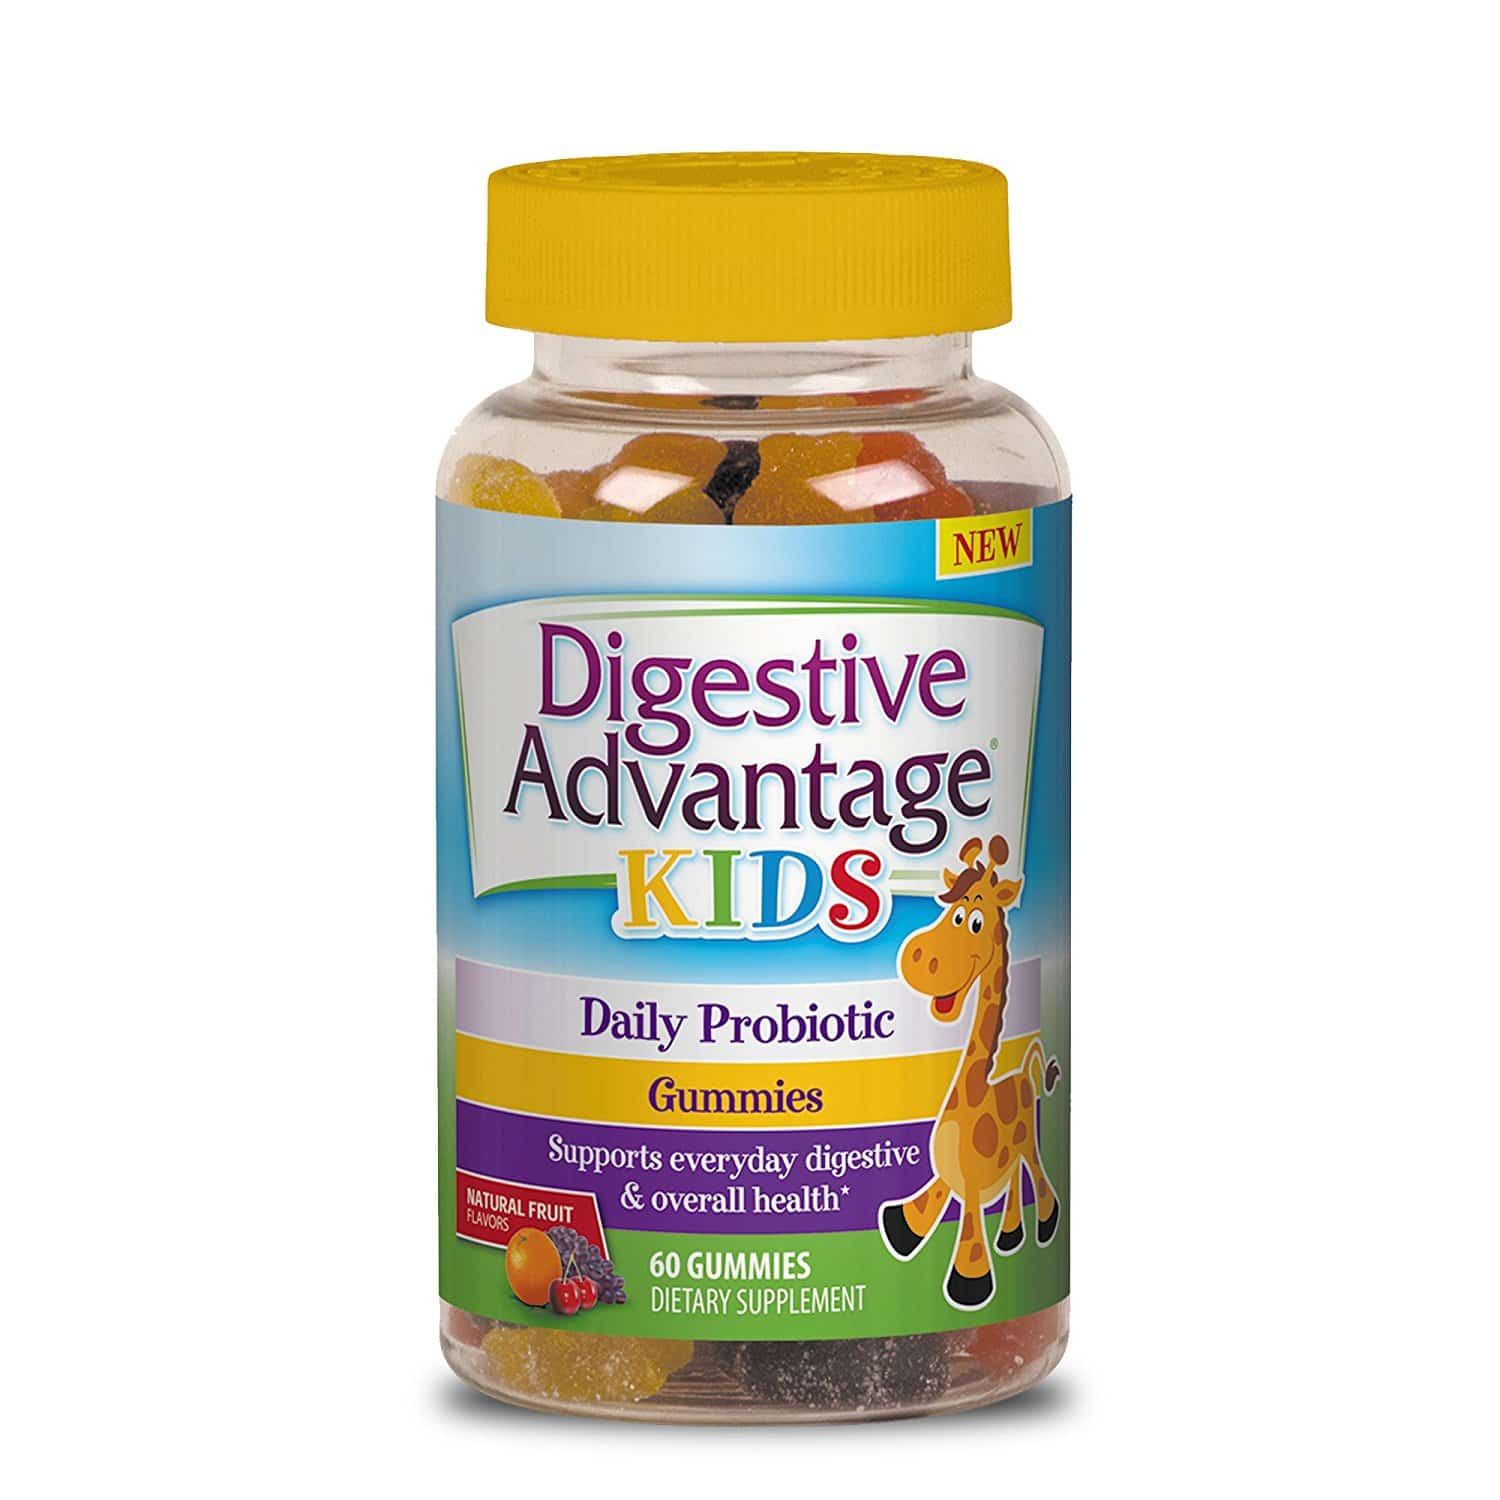 Digestive Advantage Kids Daily Probiotic Gummies in Bottle